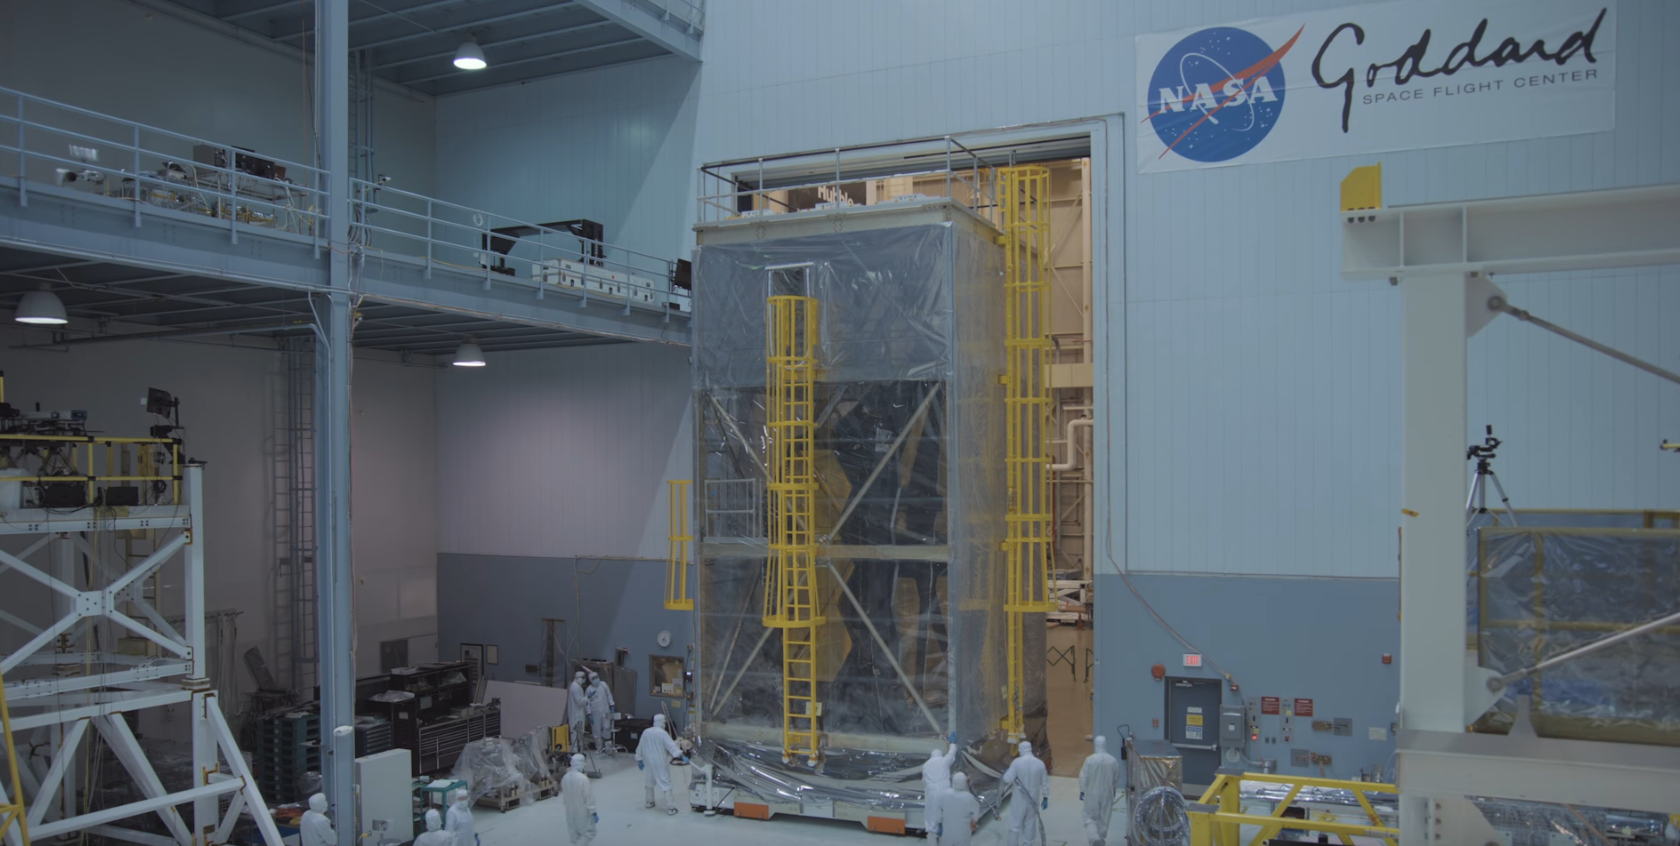 The James Webb Space Telescope just finished its vibration testing.